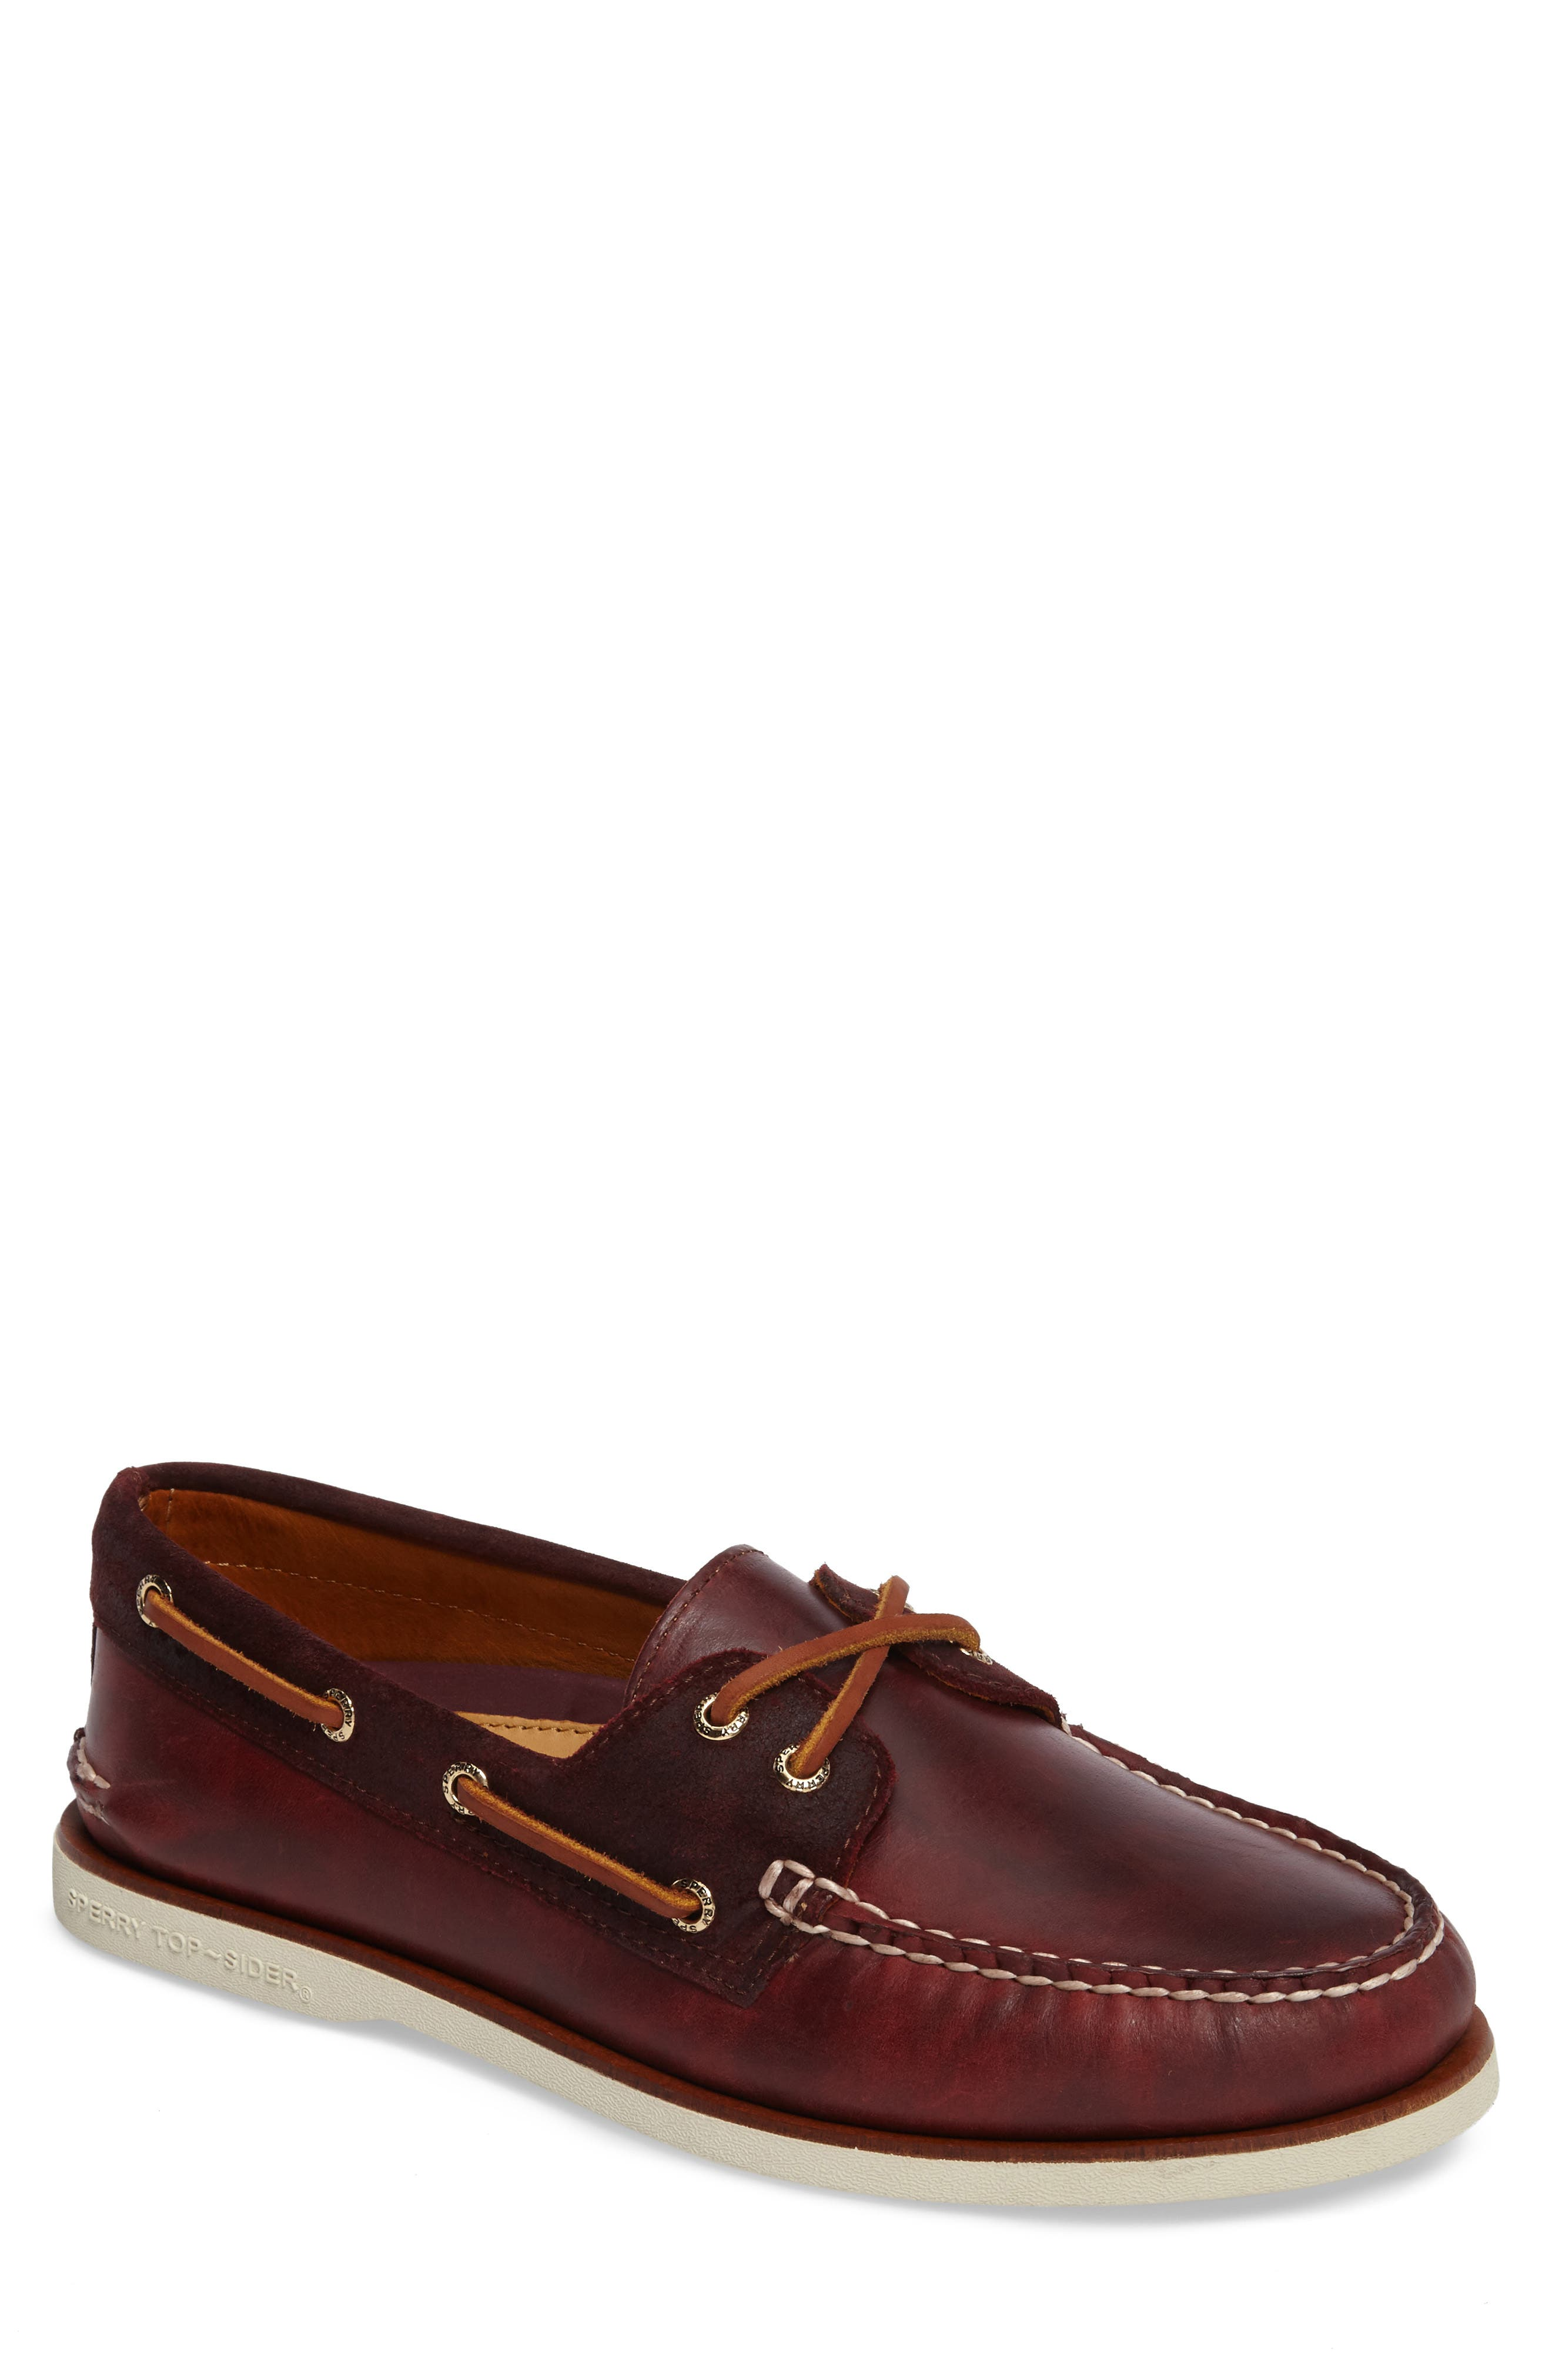 Gold Cyclone Boat Shoe,                         Main,                         color,